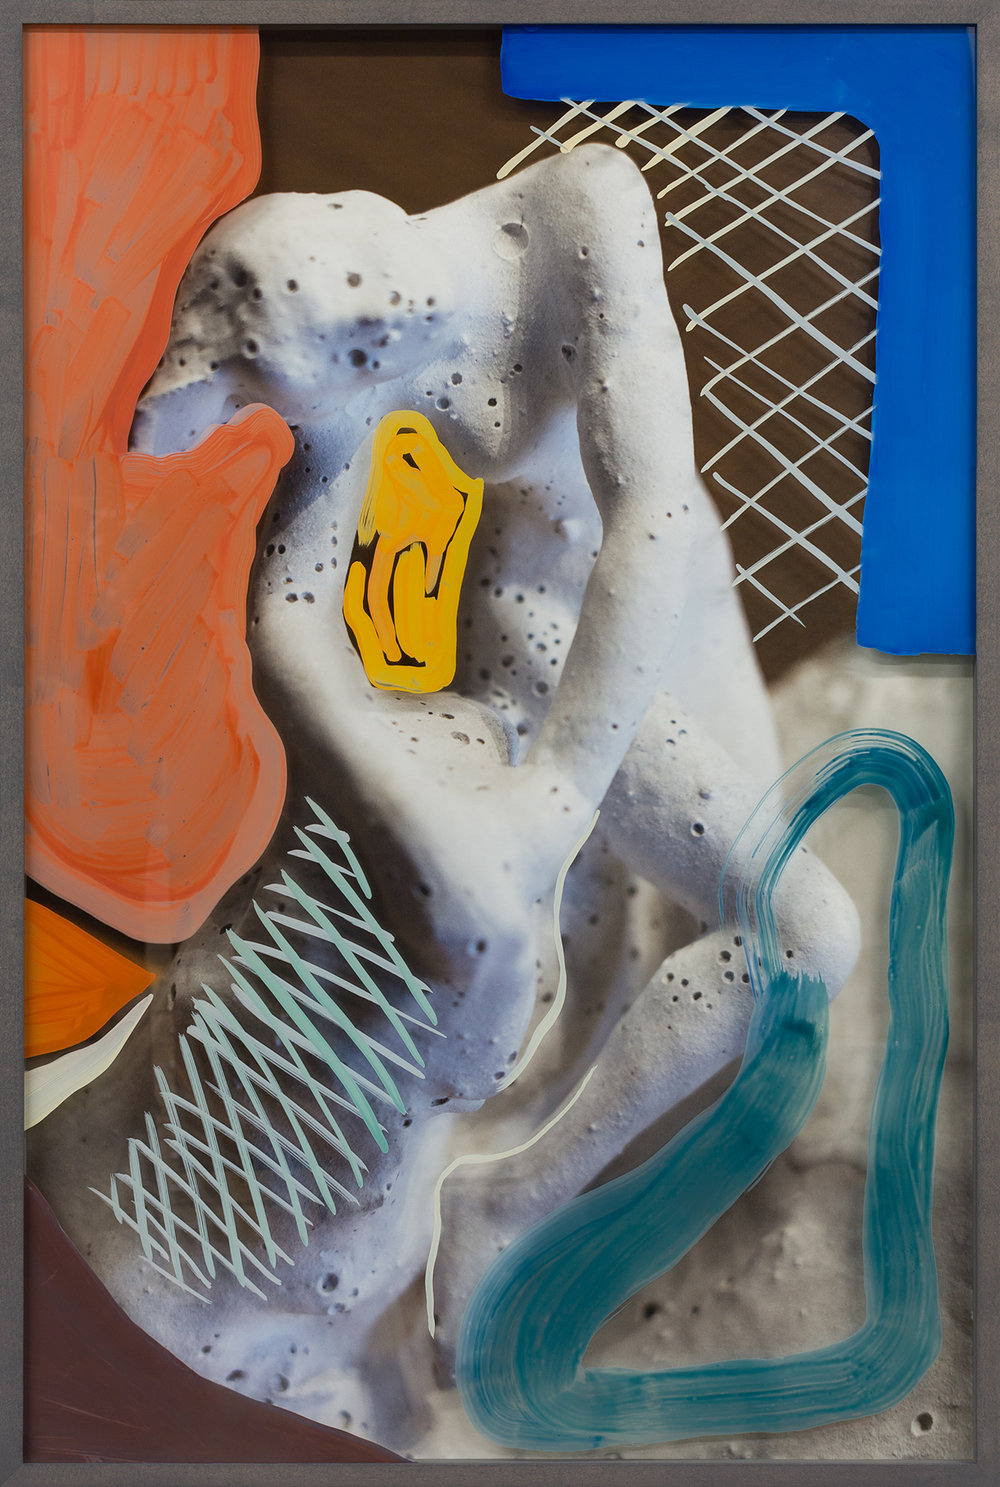 Untitled (Woman with bubbles) 2018, hand-painted glass over archival pigment print 91.5 x 61 cm / 36 x 24 in. Unique work